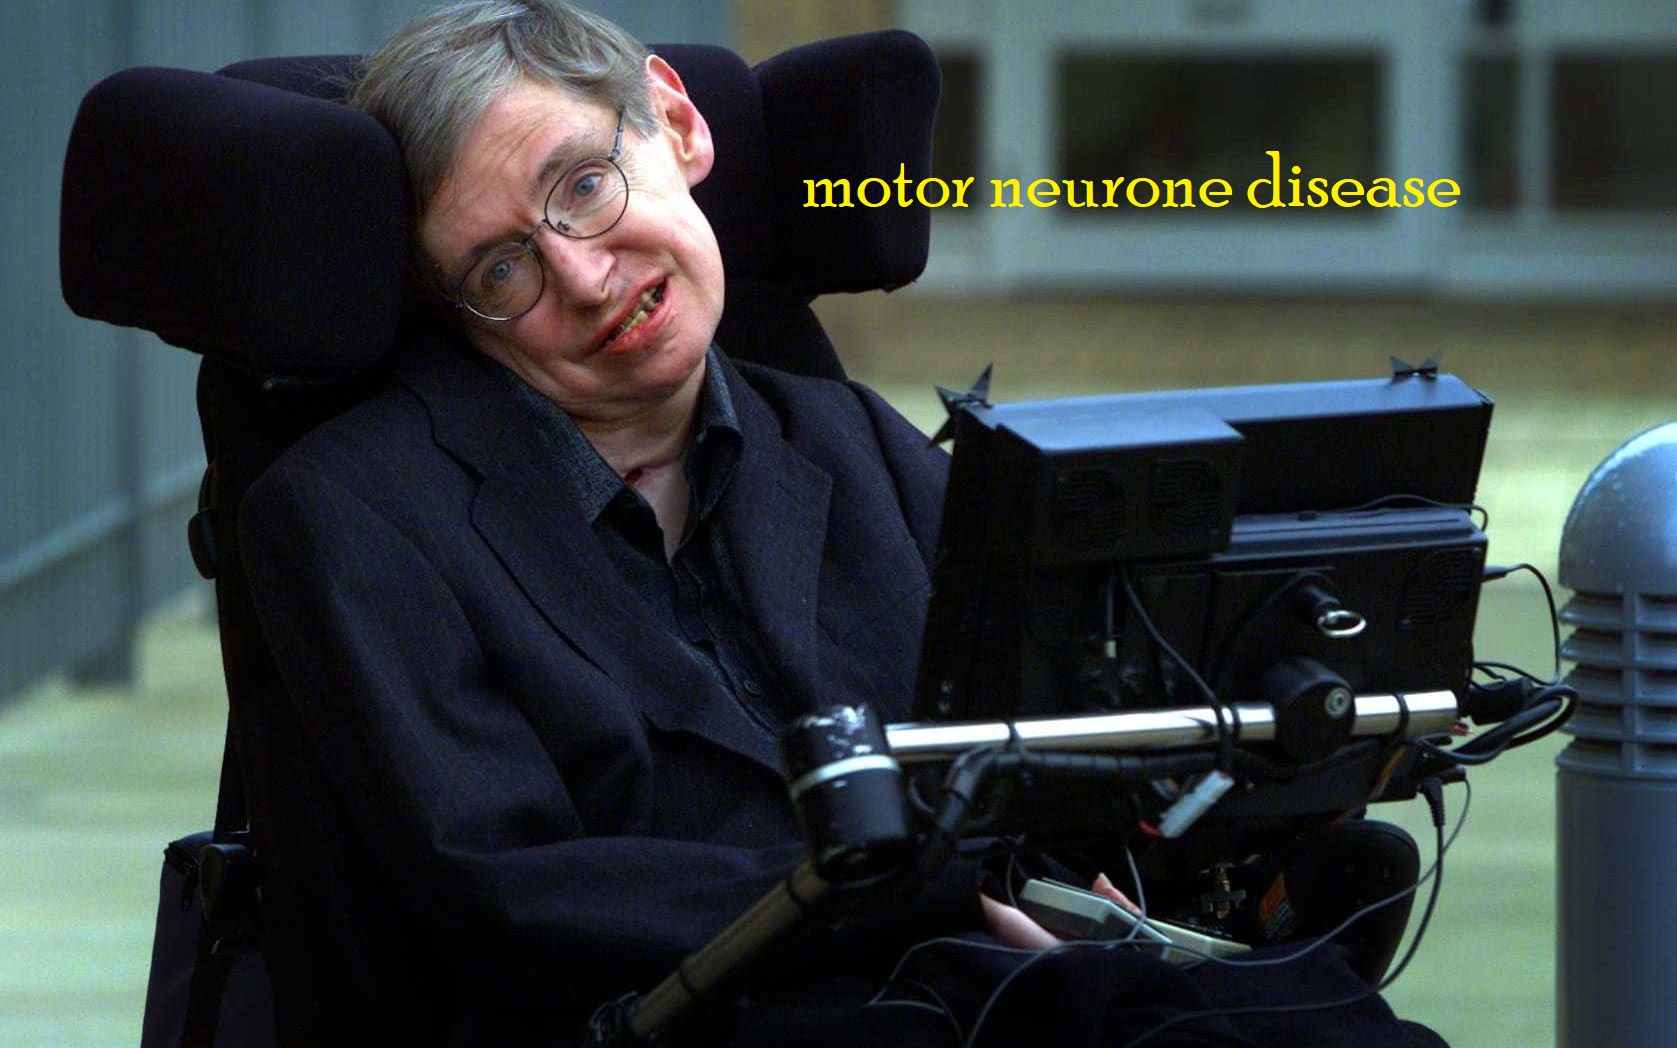 motor neurone disease